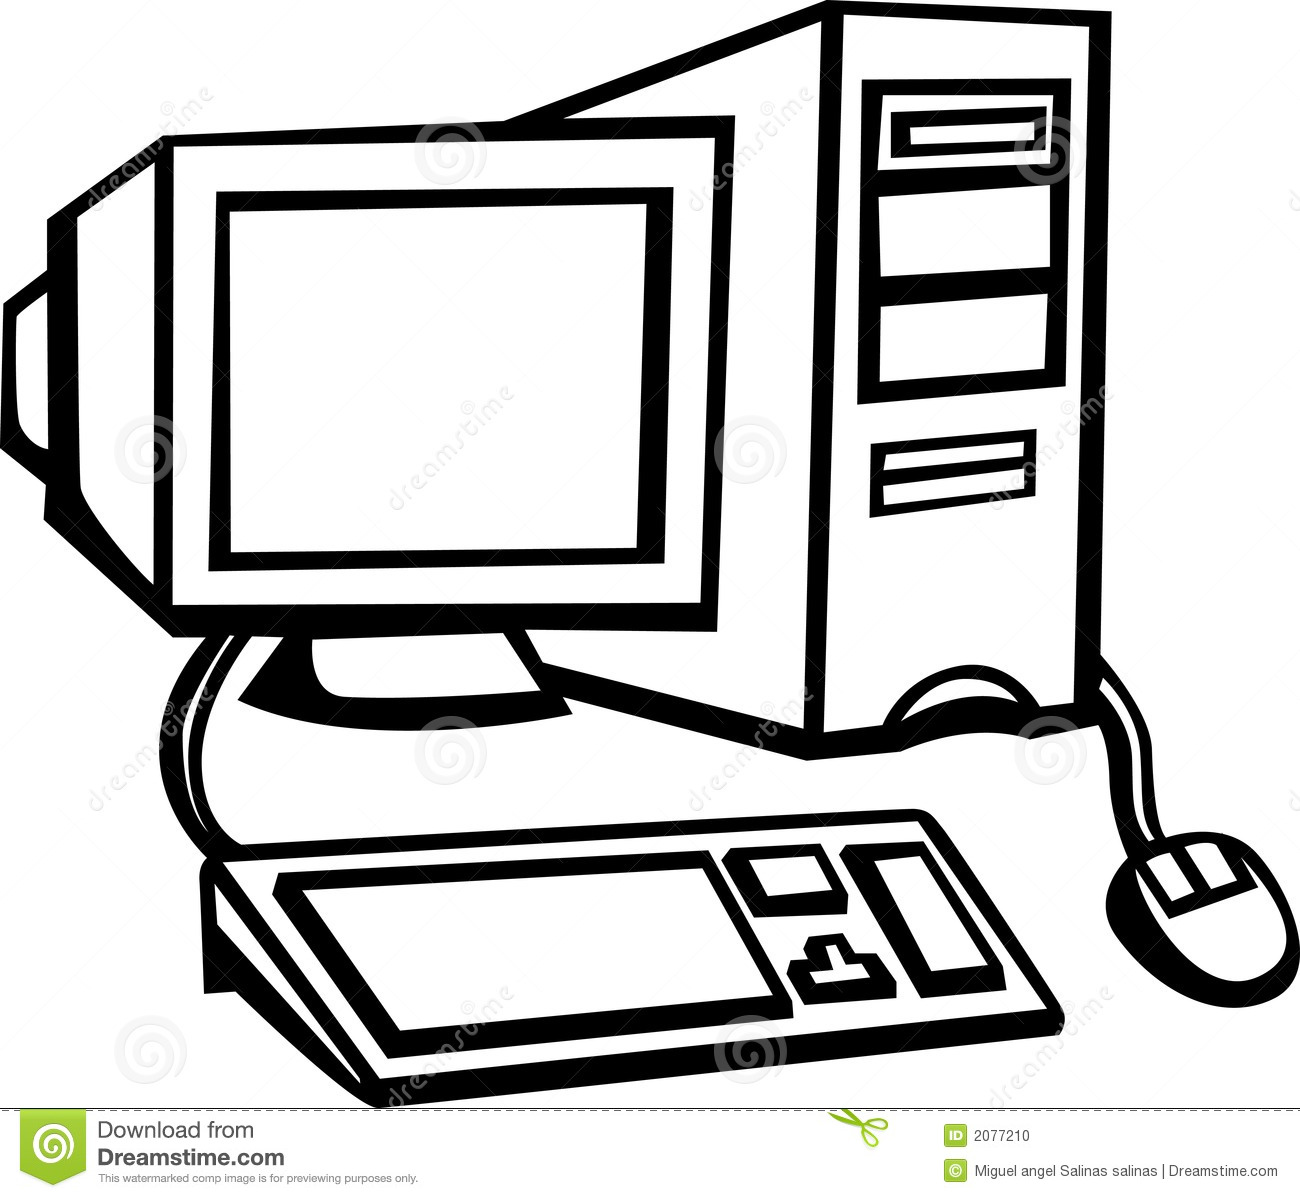 Black and white computer clipart png free download 78+ Computer Clipart Black And White | ClipartLook png free download